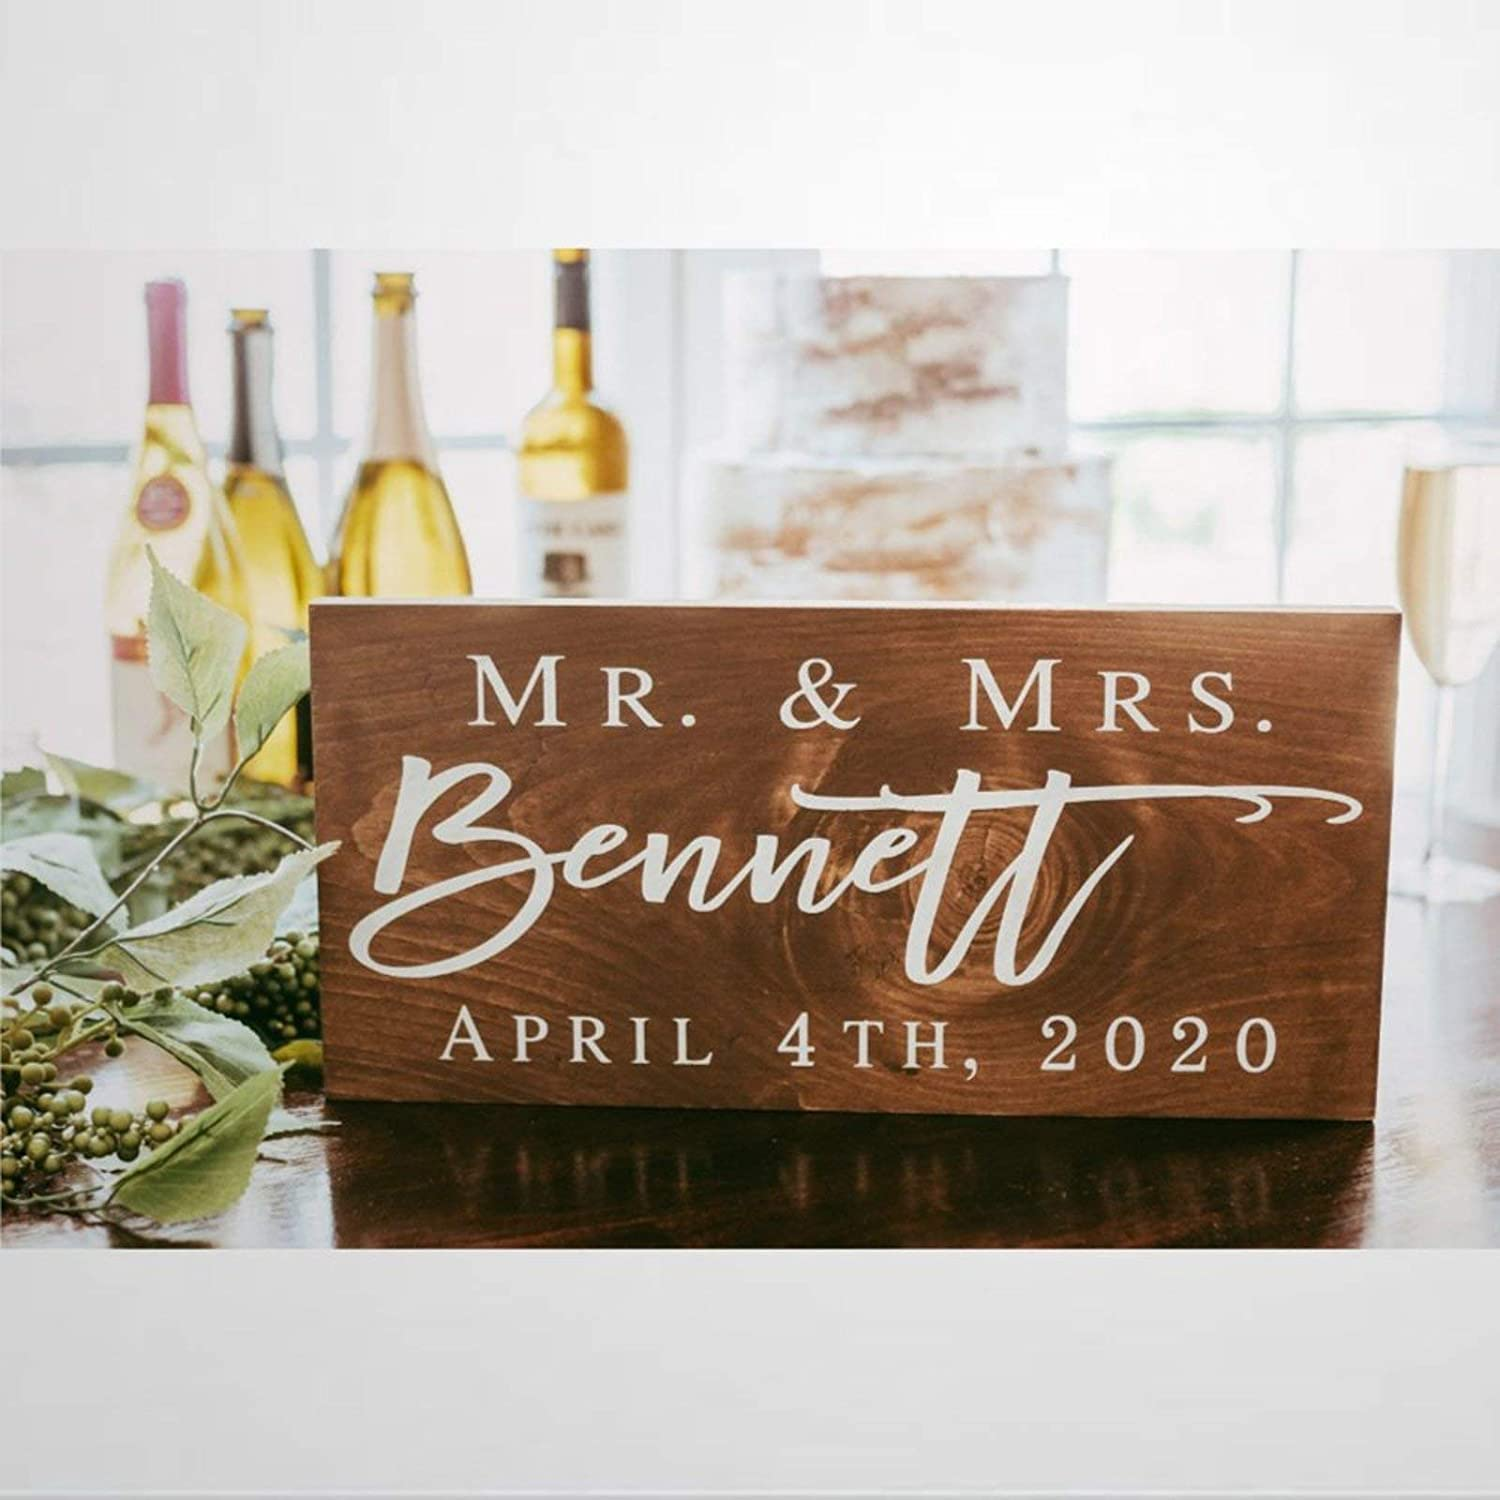 DONL9BAUER Custom Family Wood Sign Mr and Mrs Sign Last Name Bridal Shower Wall Hanging Rustic Home Decor Wall Art Indoor Outdoor